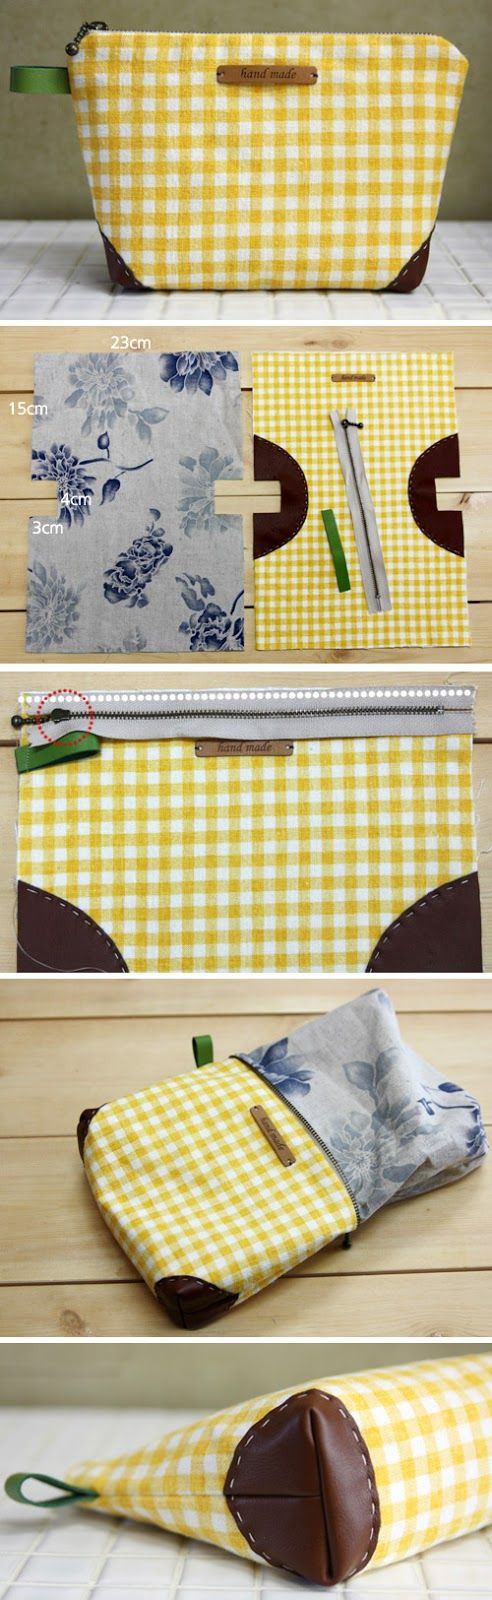 Pouch Easy Zippered Cosmetics Bag Pattern + DIY Tutorial in Pictures. http://www.handmadiya.com/2015/11/zippered-handbag-cosmetic-bag-tutorial.html